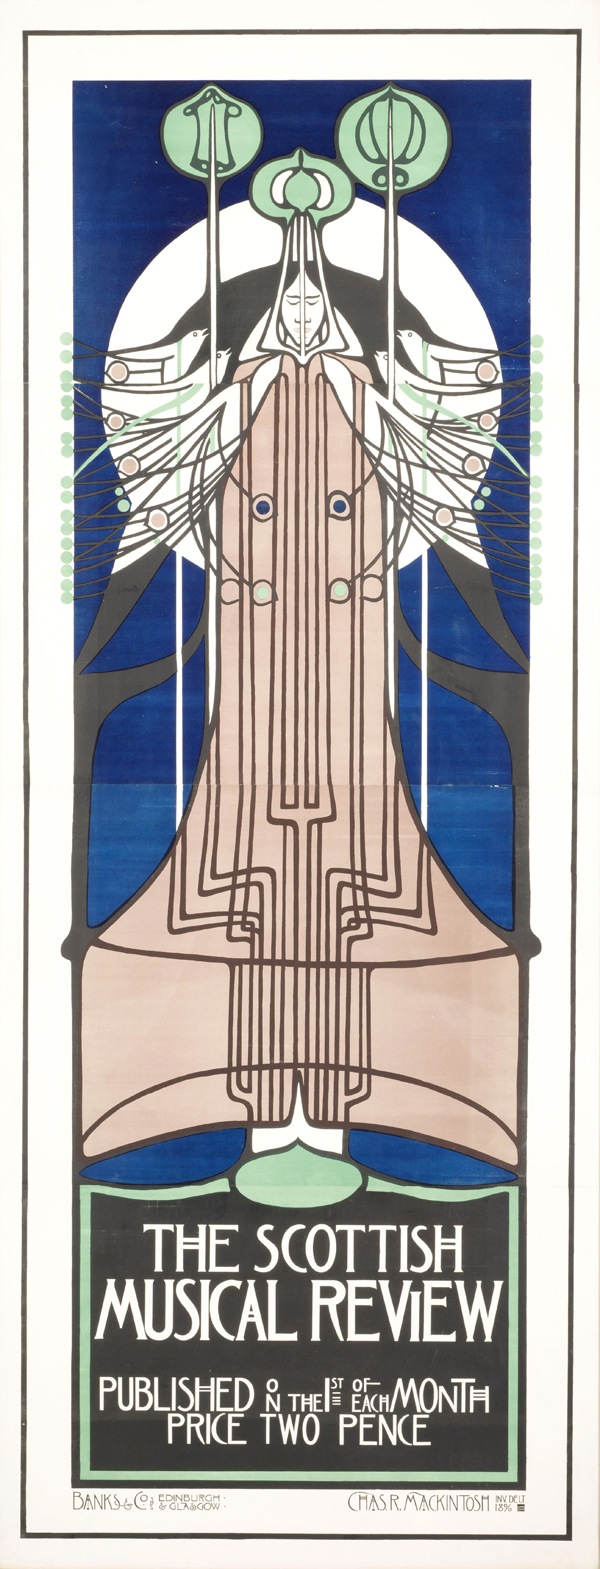 """Charles Rennie Mackintosh: lithograph poster for """"The Scottish Musical Review,"""" 1896. 96 1/2 x 39 1/8 in."""